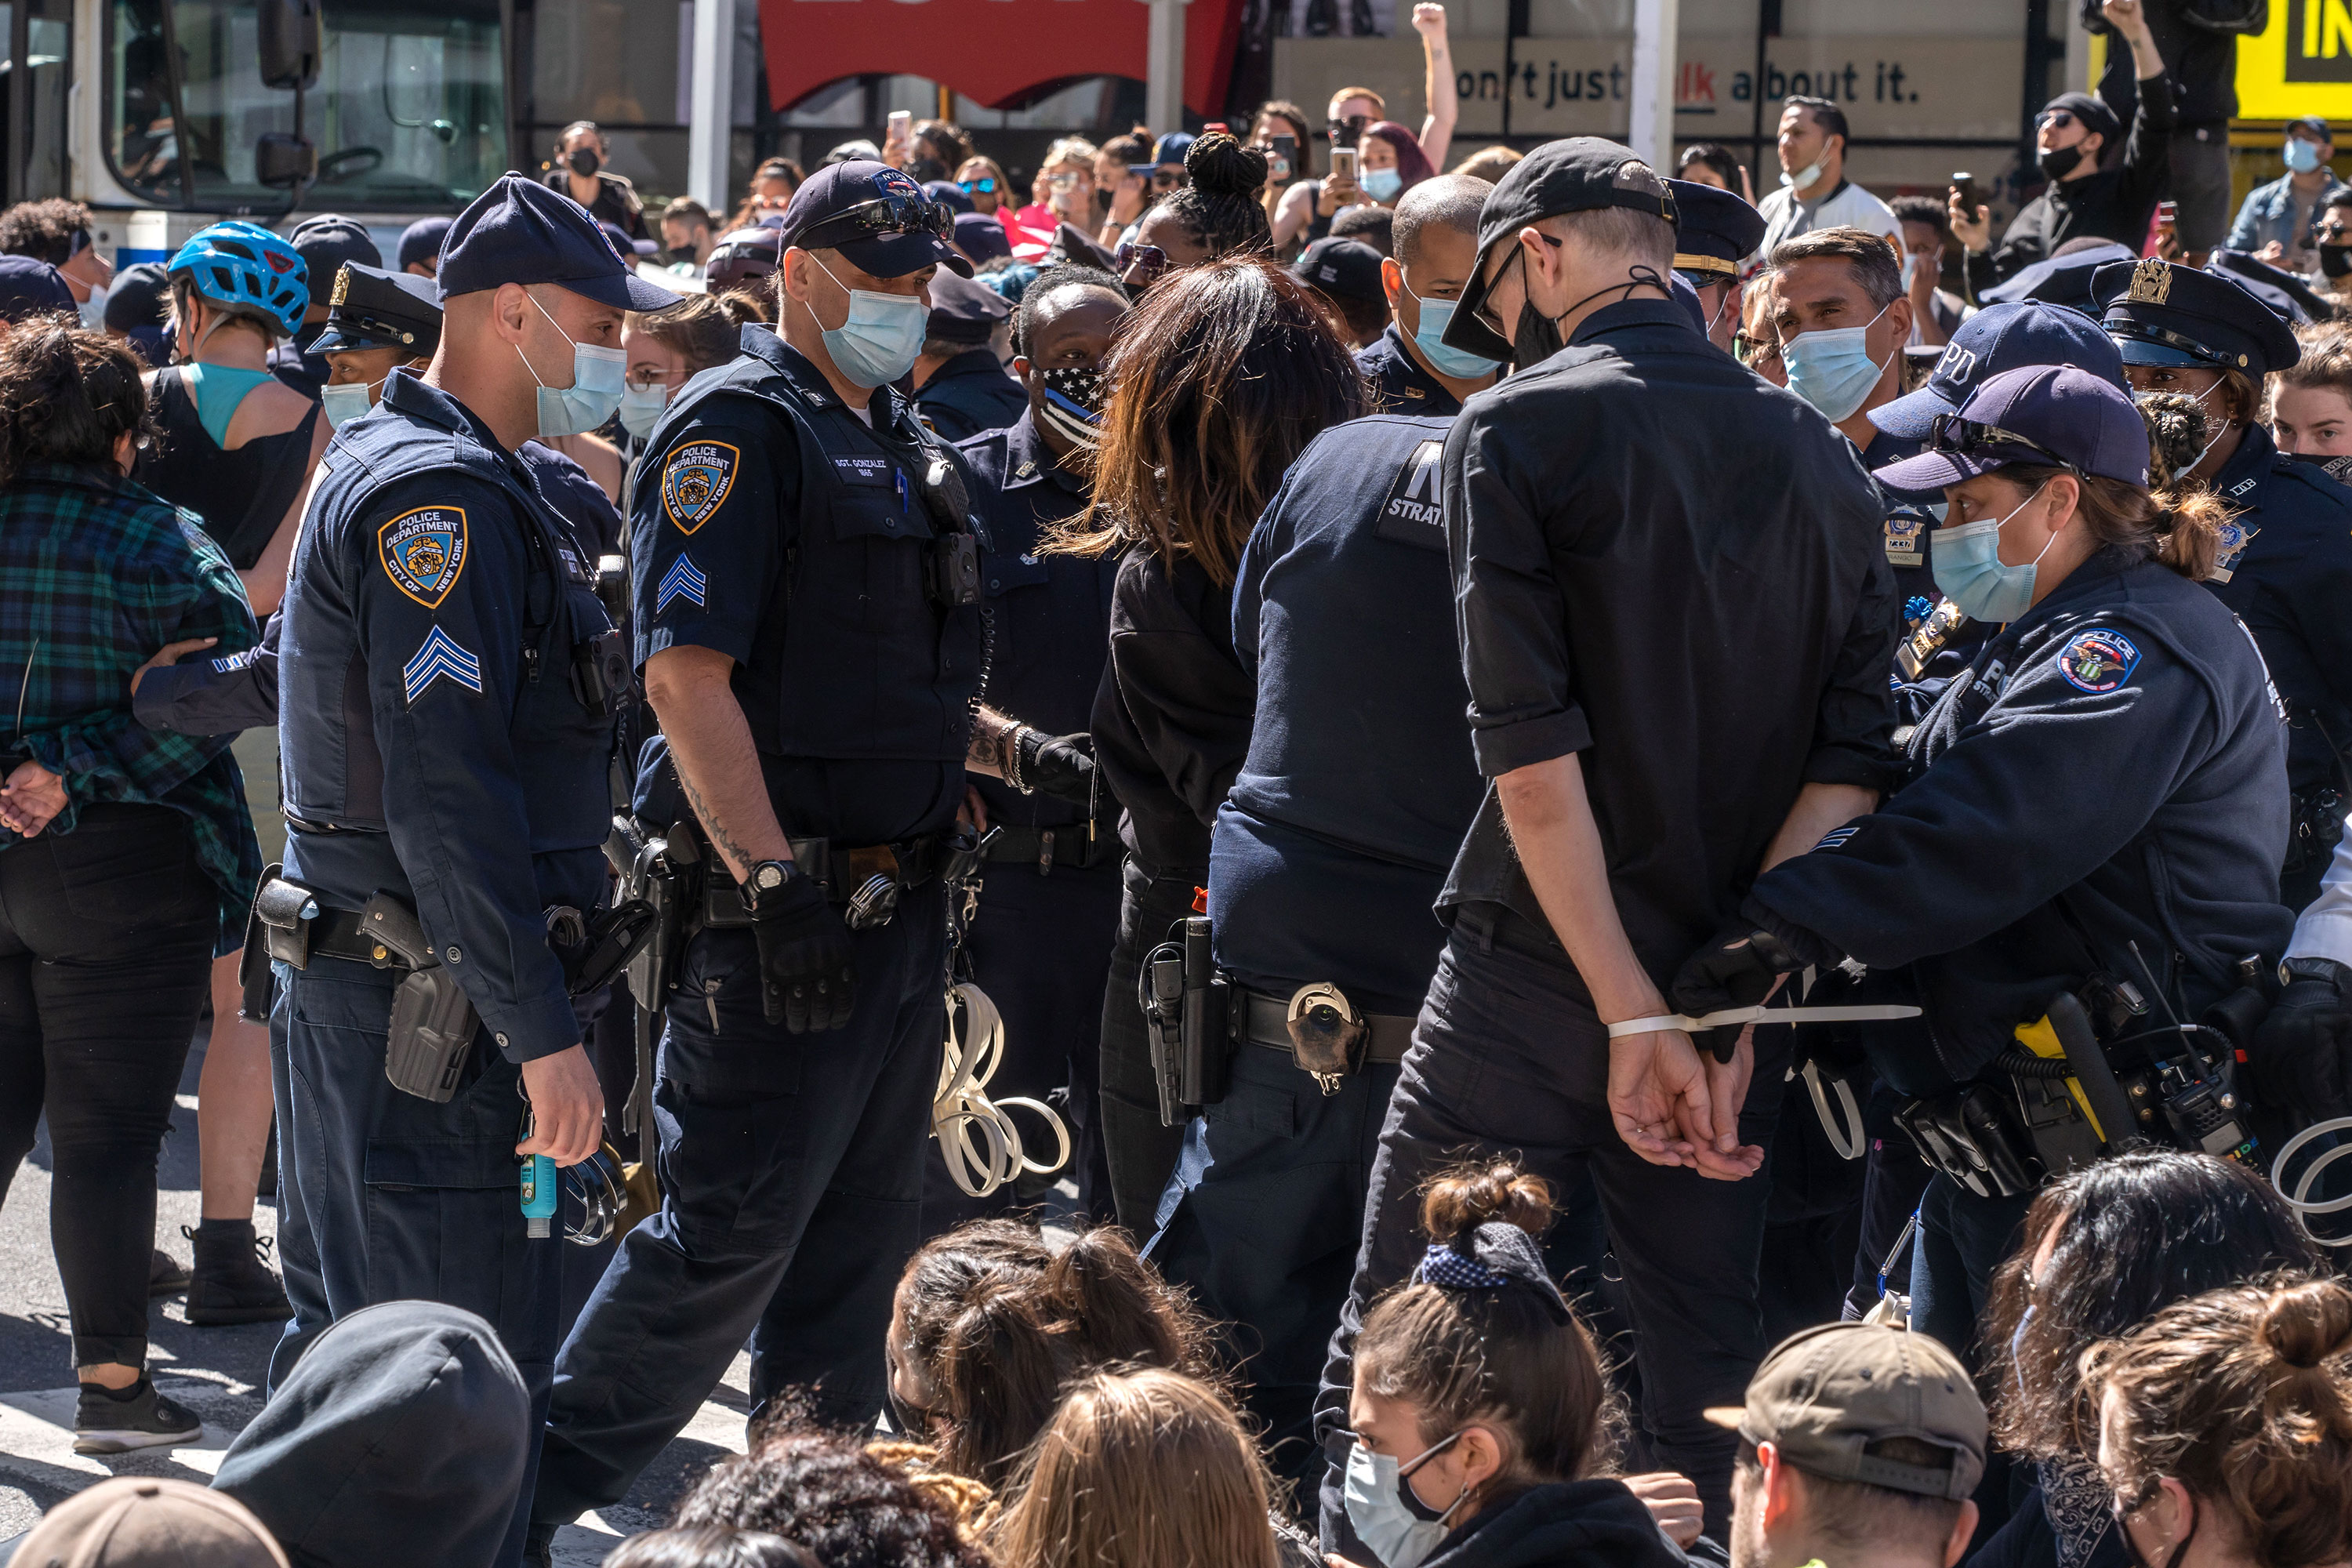 New York police arrest 86 anti-ICE protesters